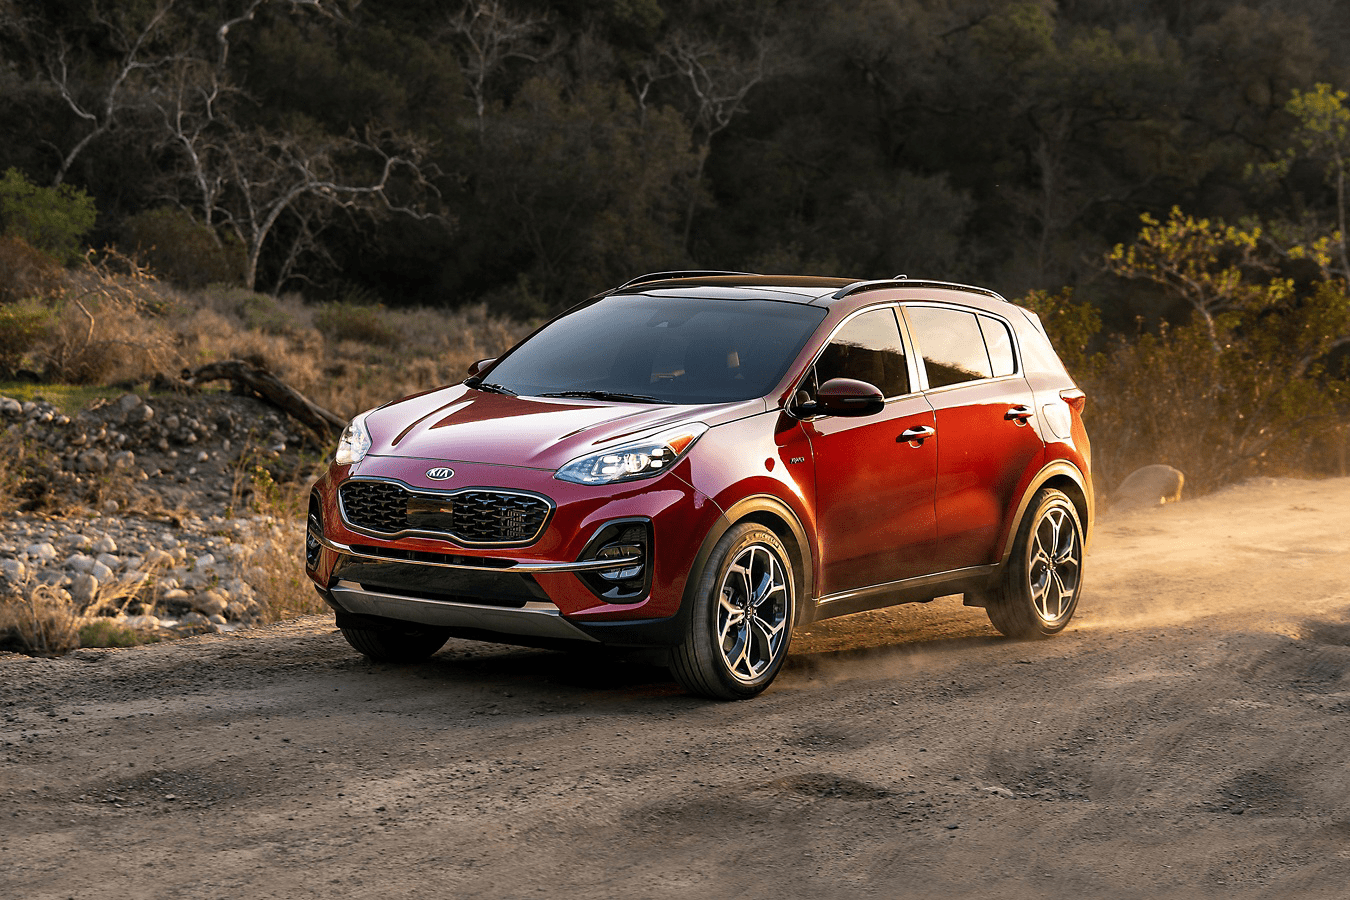 Sportage on dirt road